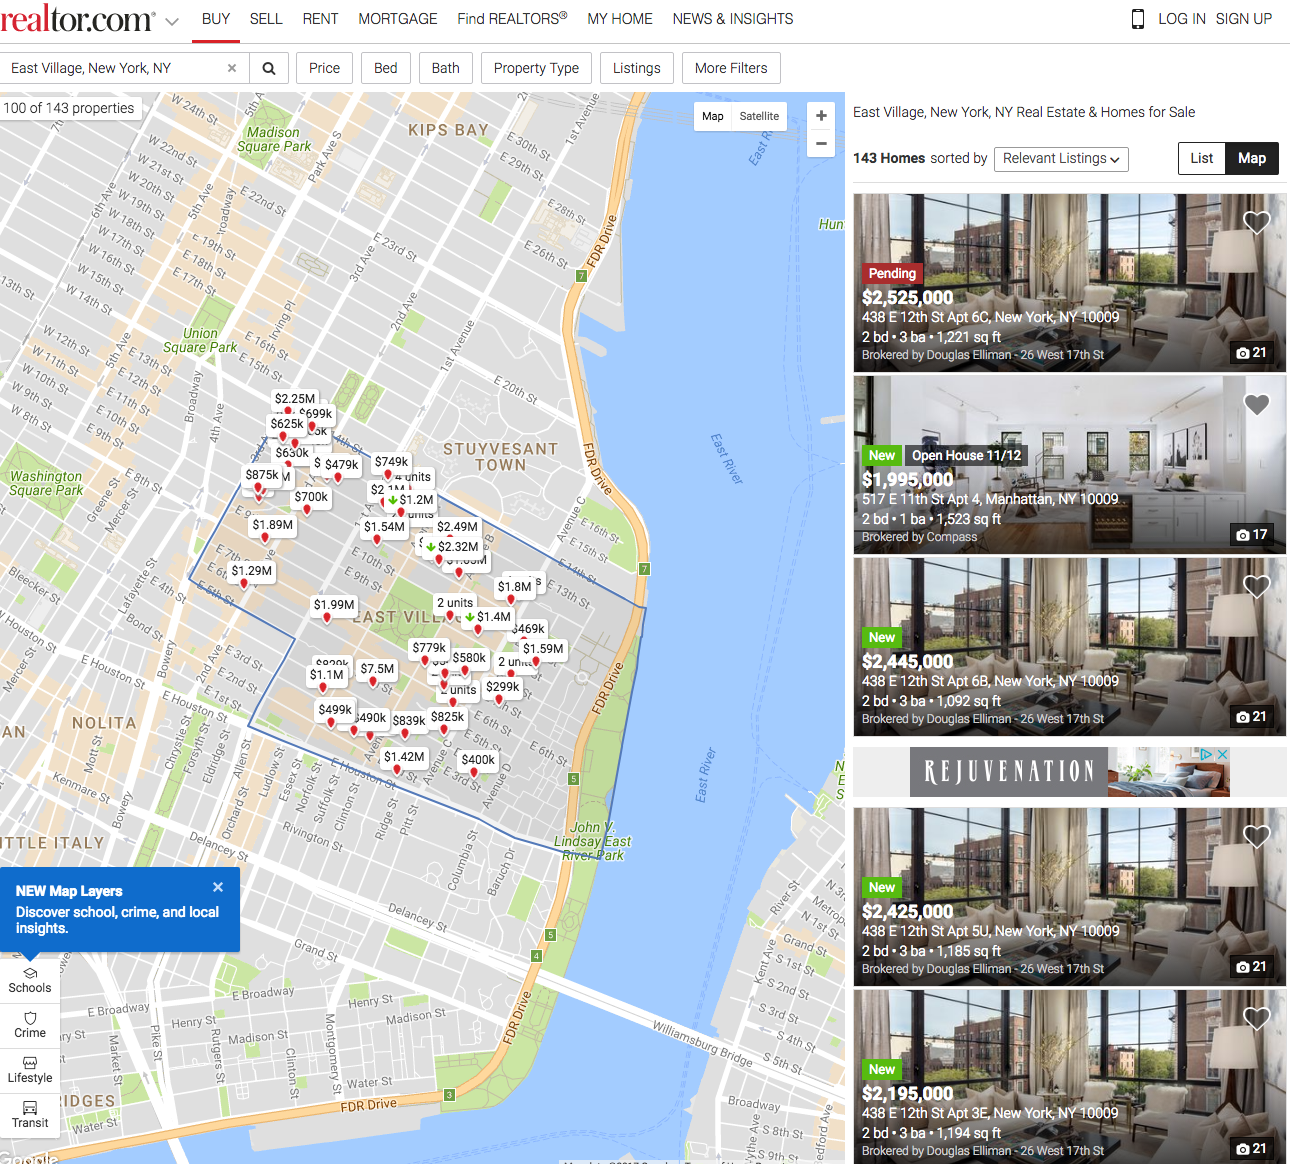 Best Site To Look For Apartments: The 3 Best Websites For Buying A Co-op Or Condo Apartment